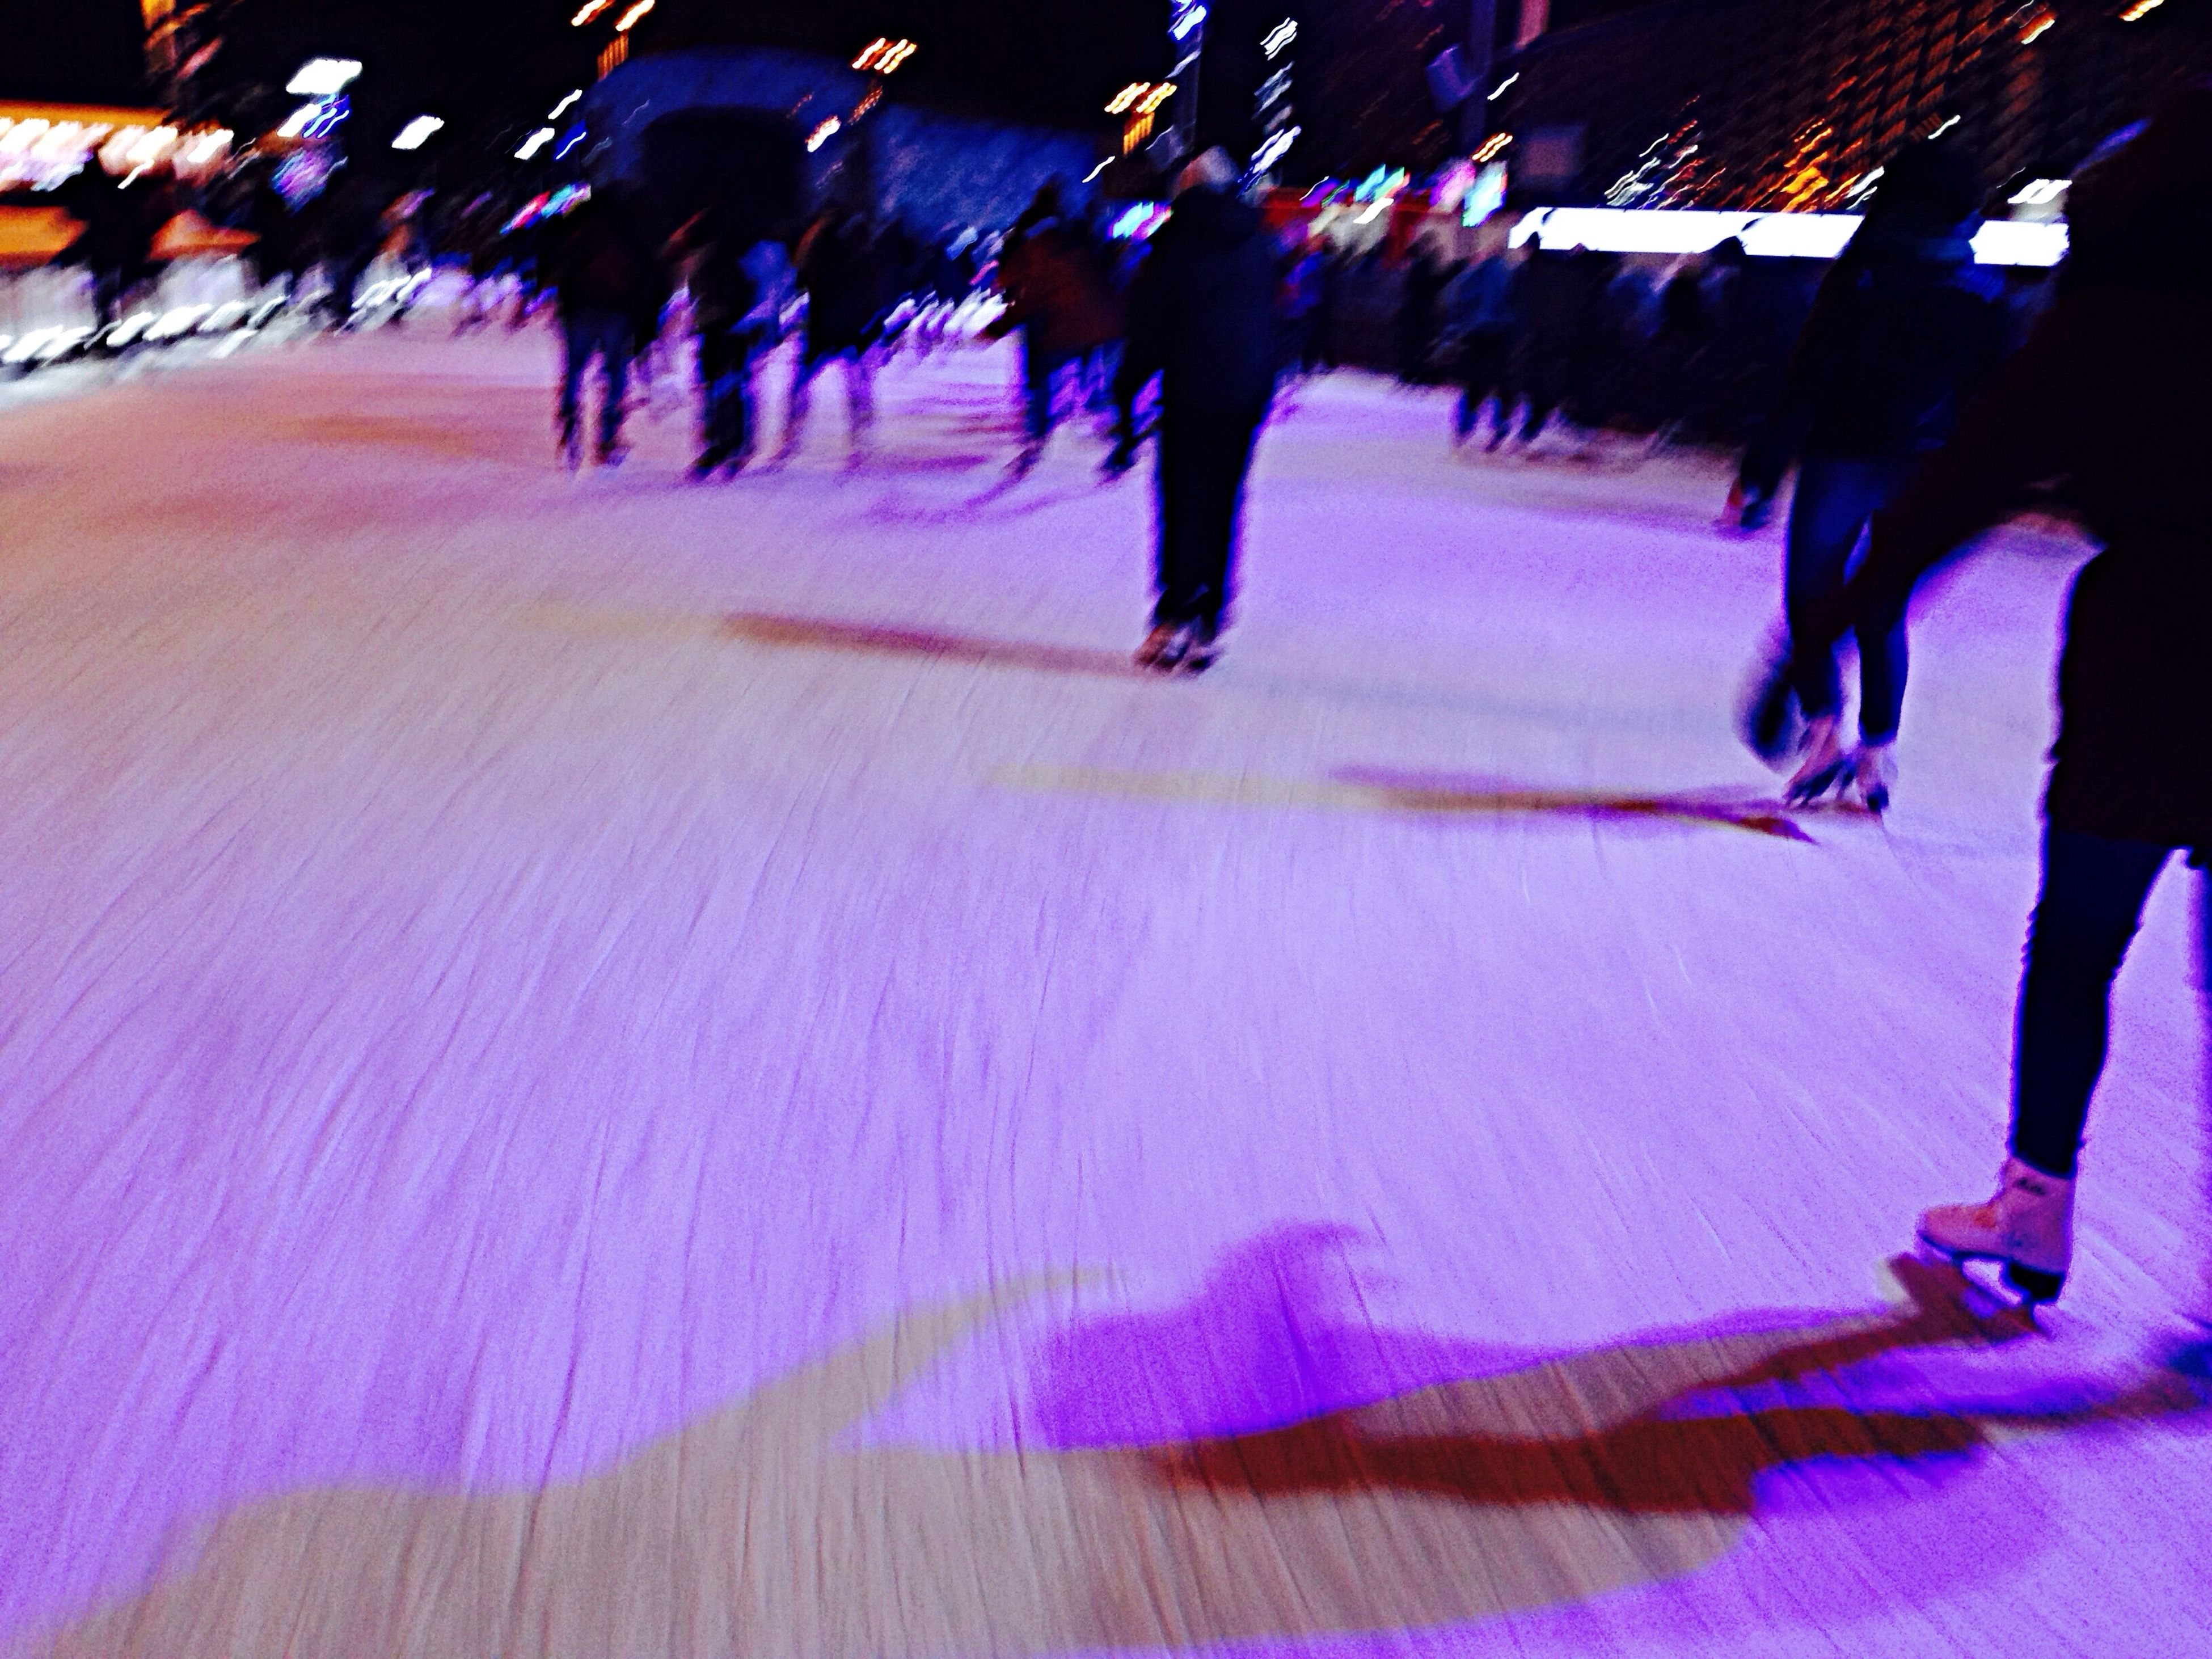 lifestyles, men, large group of people, person, leisure activity, walking, illuminated, night, city life, low section, medium group of people, street, group of people, shadow, silhouette, blurred motion, togetherness, indoors